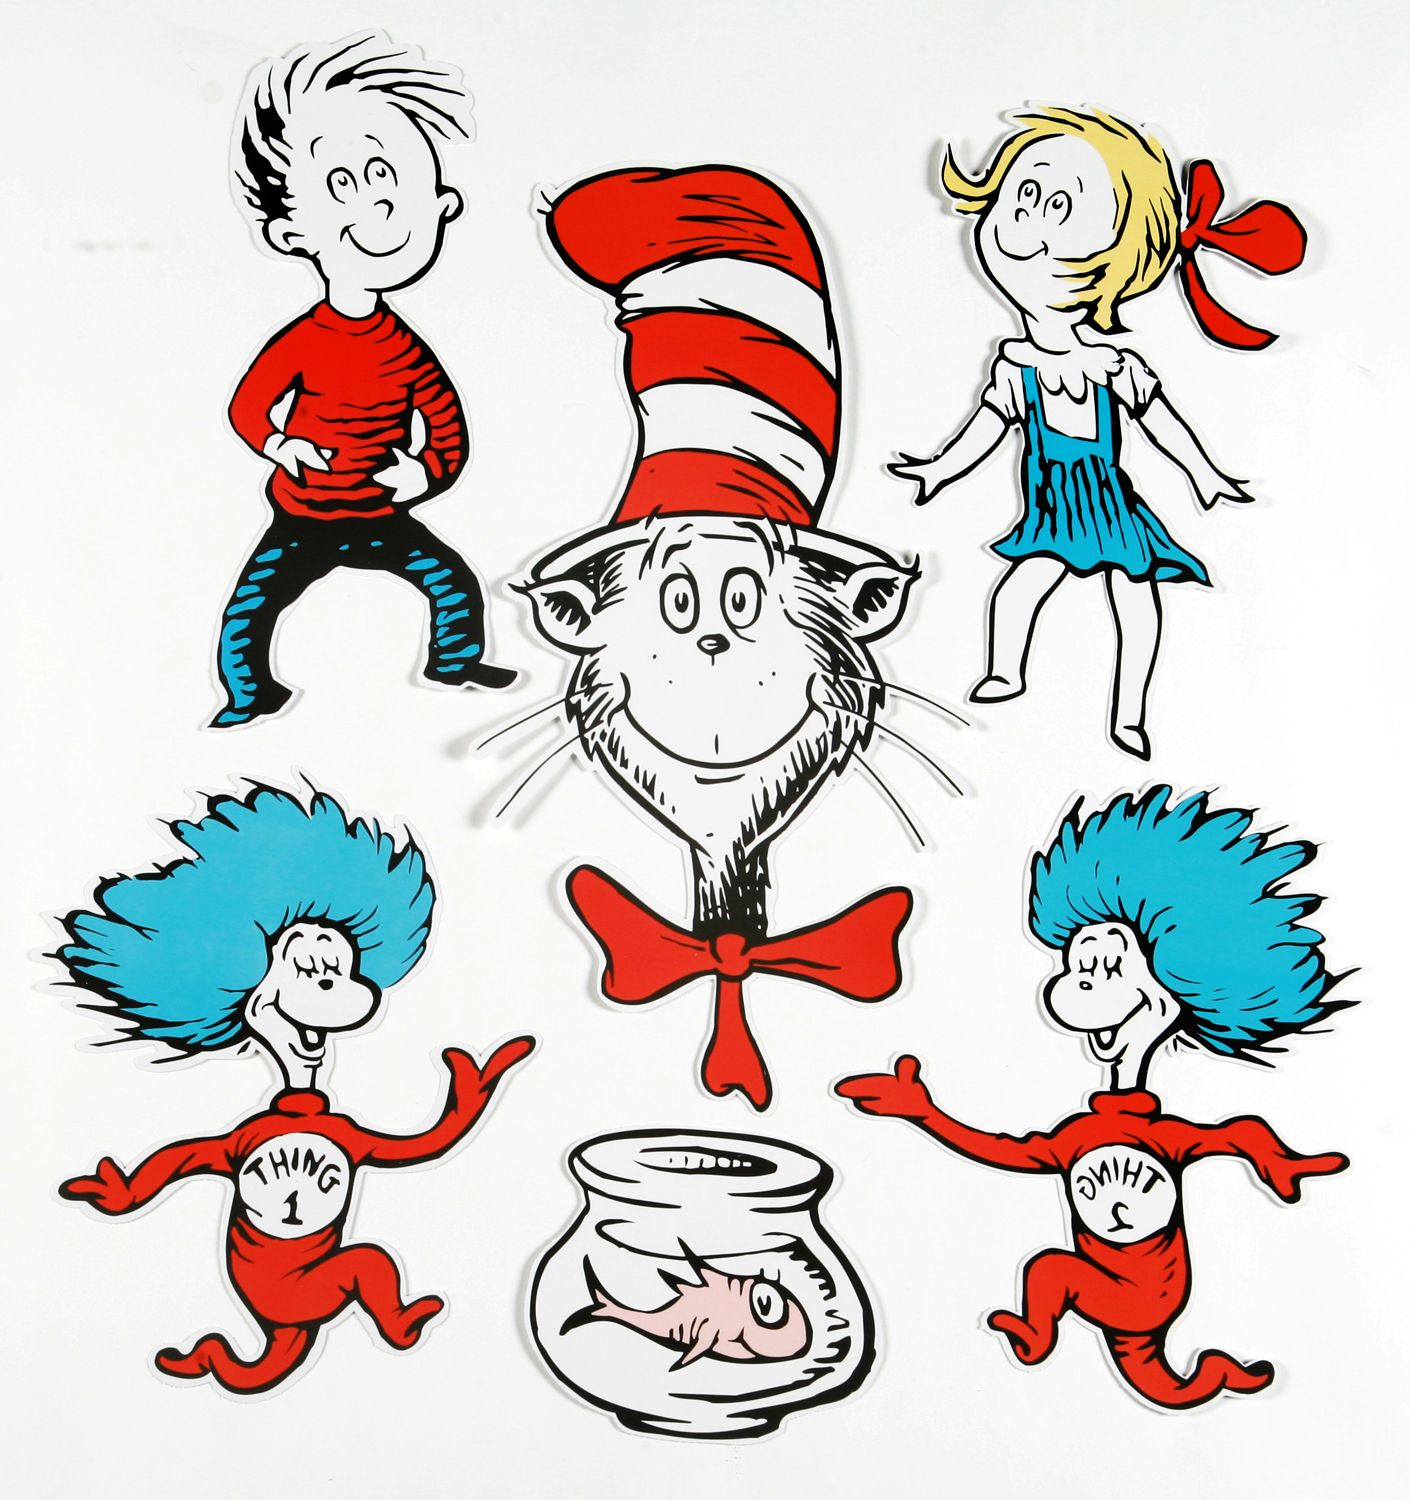 image relating to Printable Images of Dr Seuss Characters identify Dr. Seuss People Hefty Dr. Seuss Figures 2-Sided